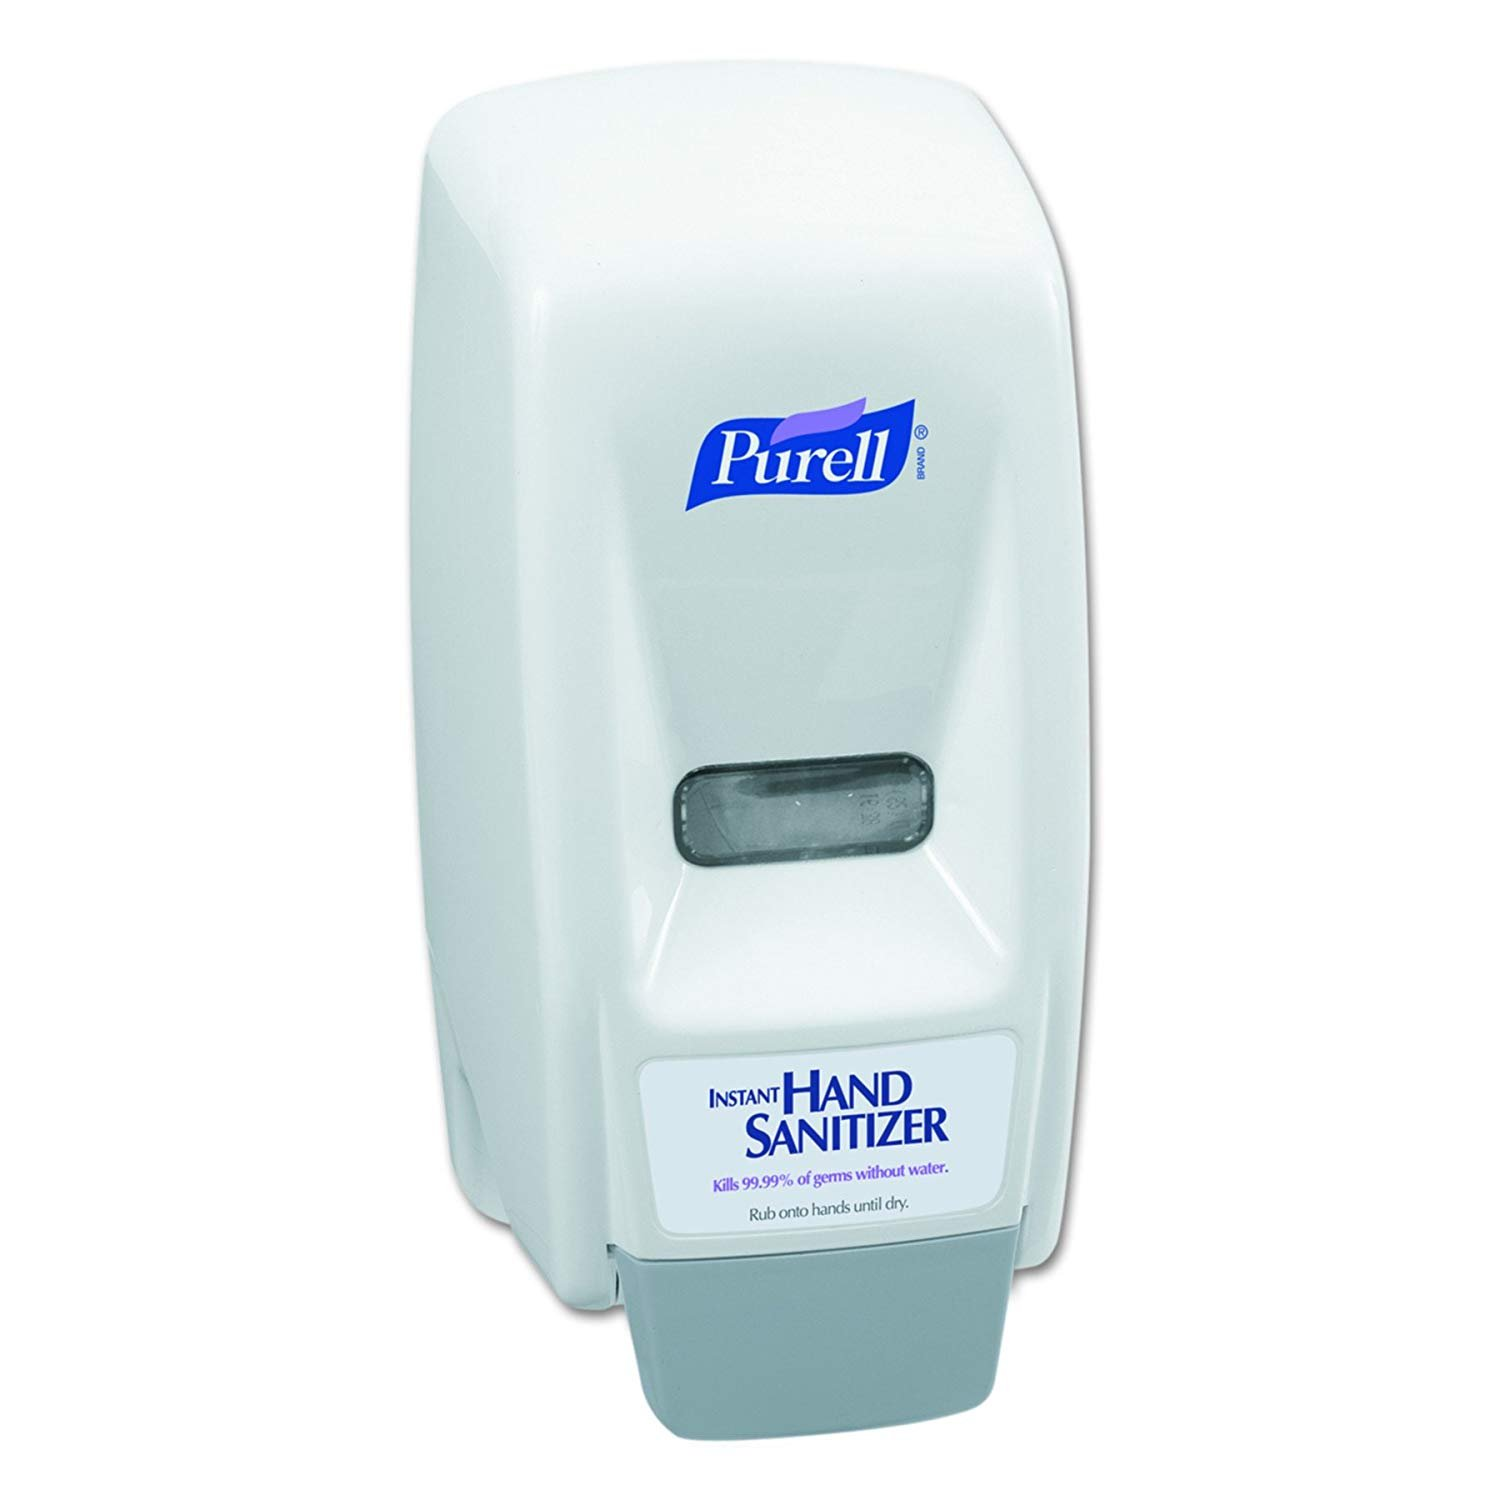 Amazon.com: PURELL 962112 Bag-In-Box Hand Sanitizer Dispenser, 800mL ...